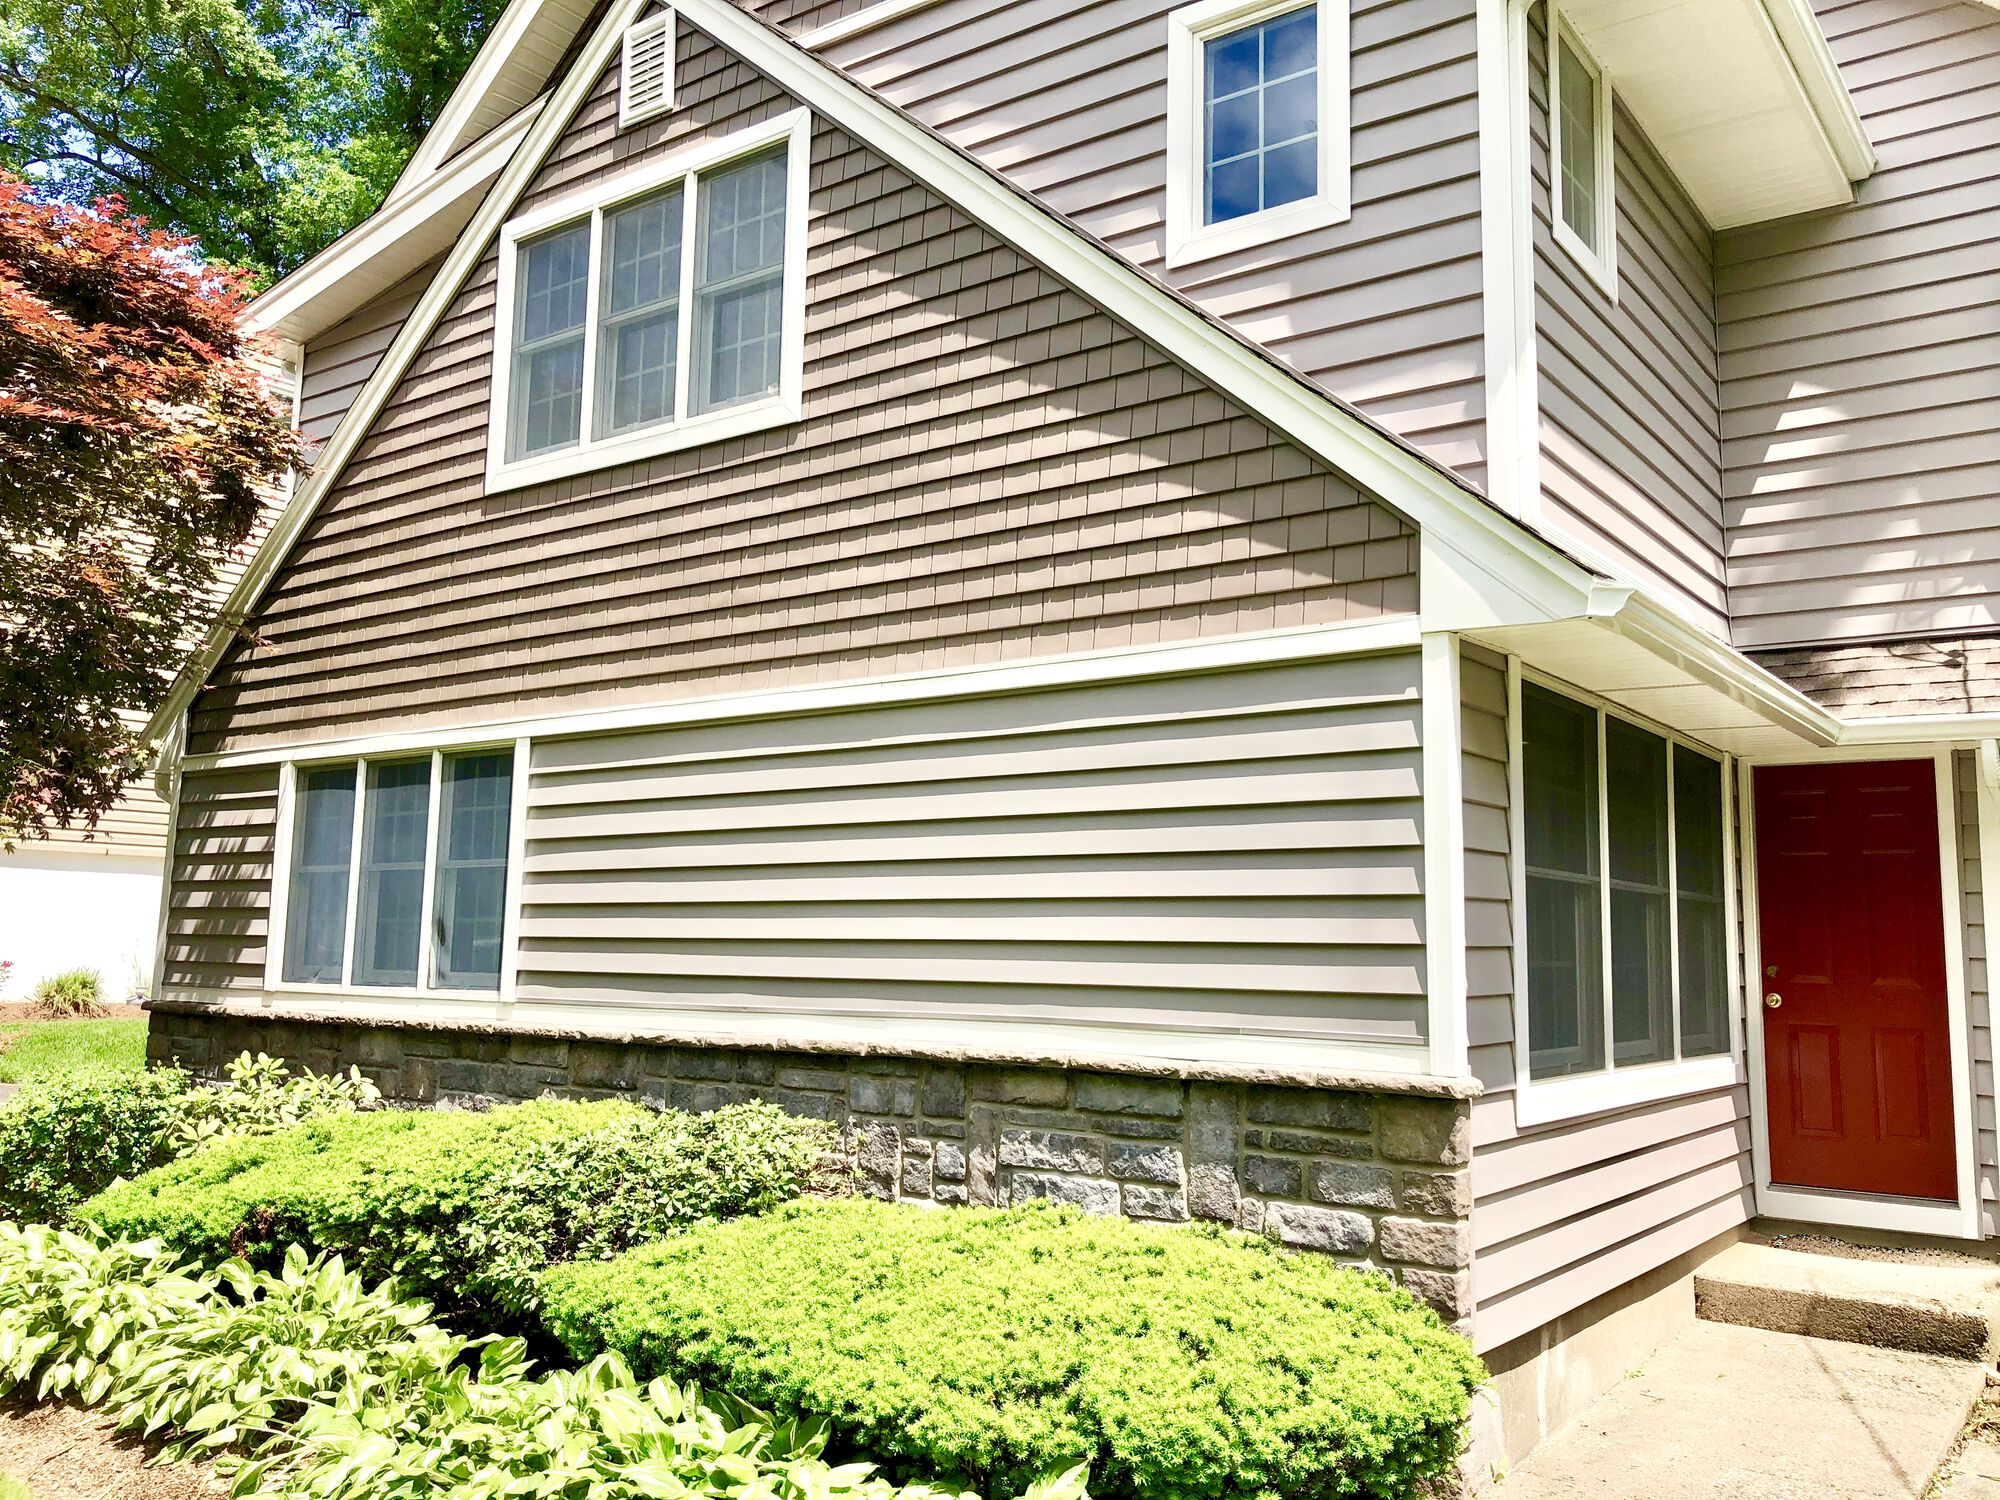 Certainteed Shake and Insulated Clapboard Siding with Boral Sculpted Ashlar Stone Foundation in Ridgewood, Bergen County NJ